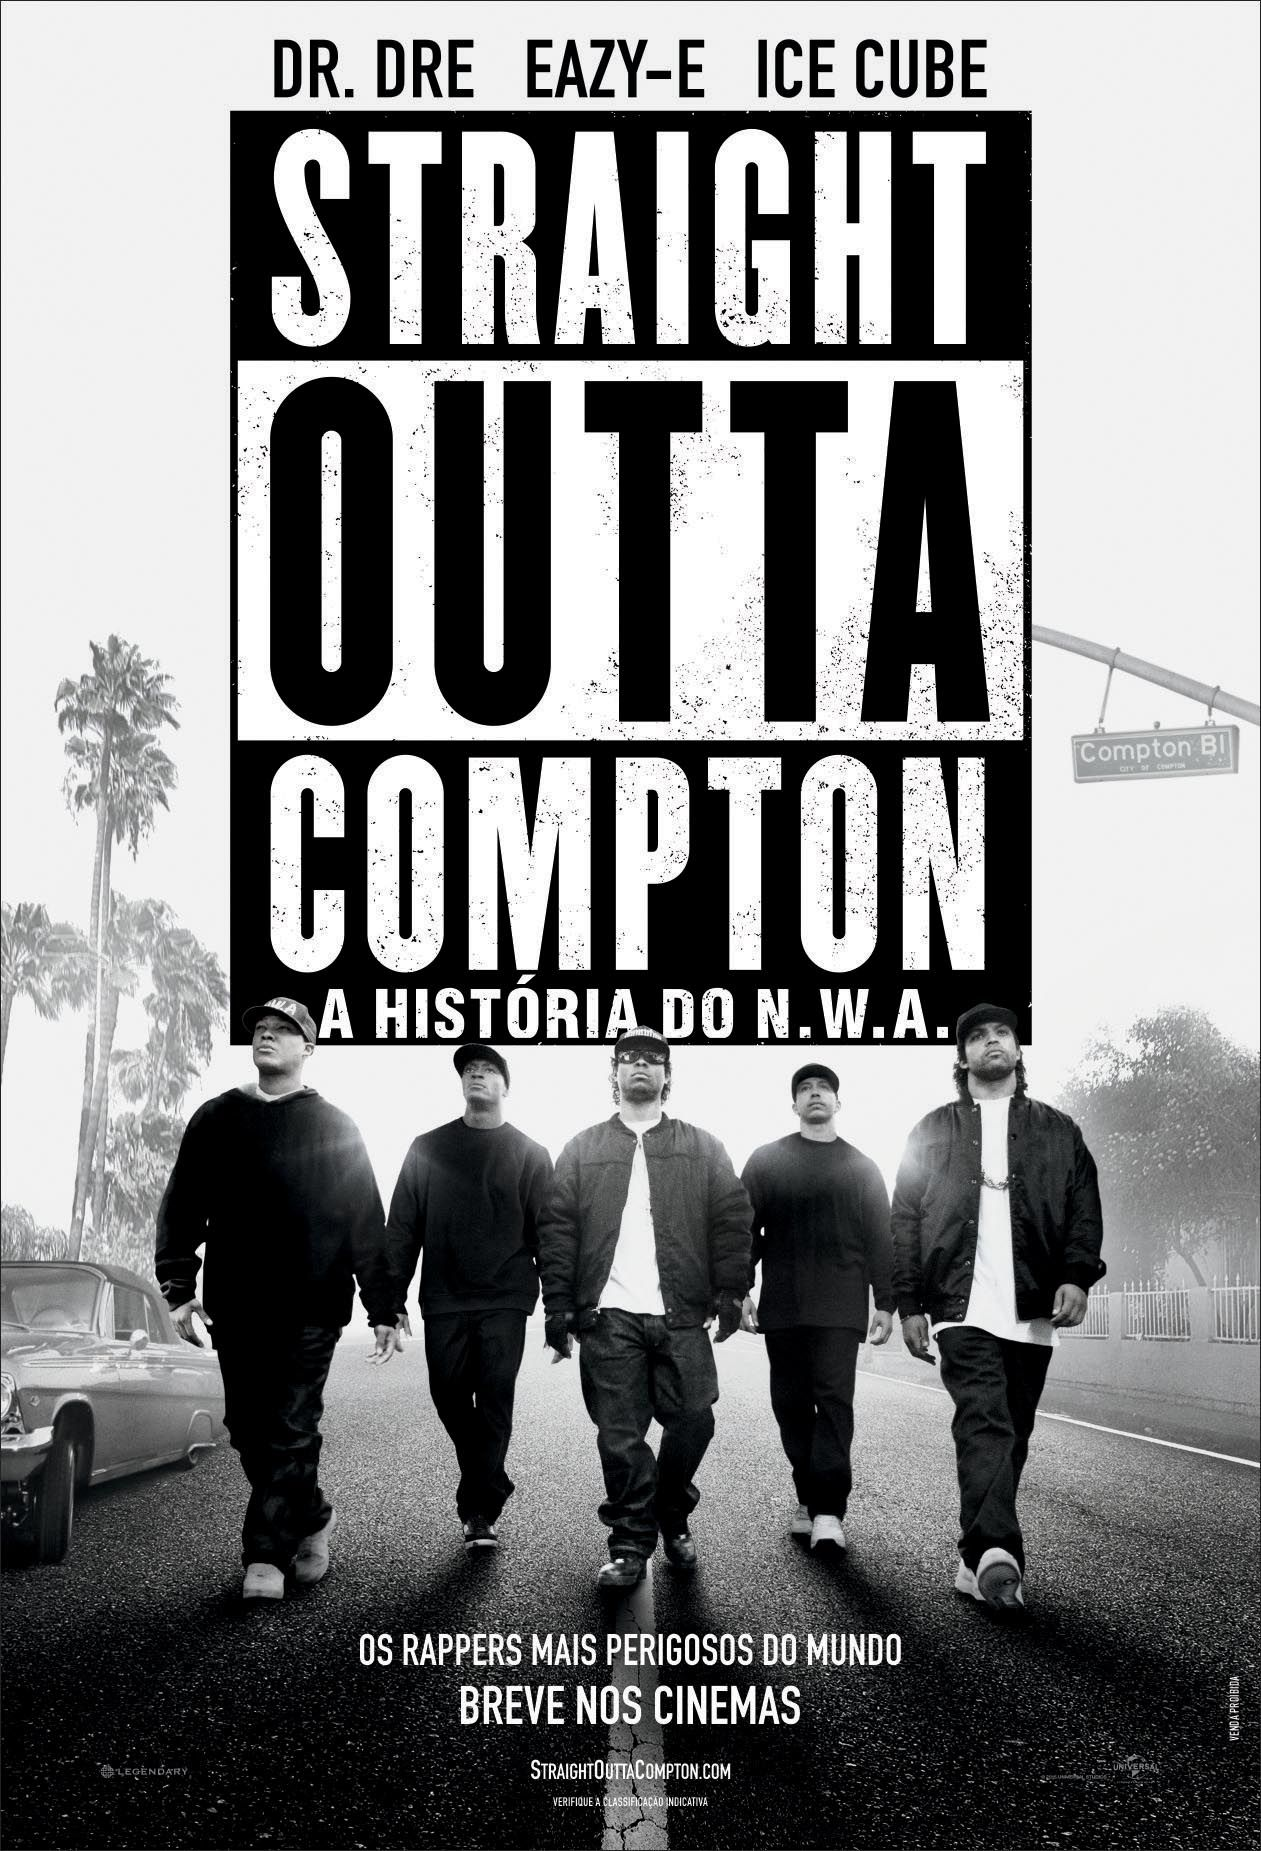 Cartaz Oficial #StraightOuttaCompton | Hip hop | Pinterest ...